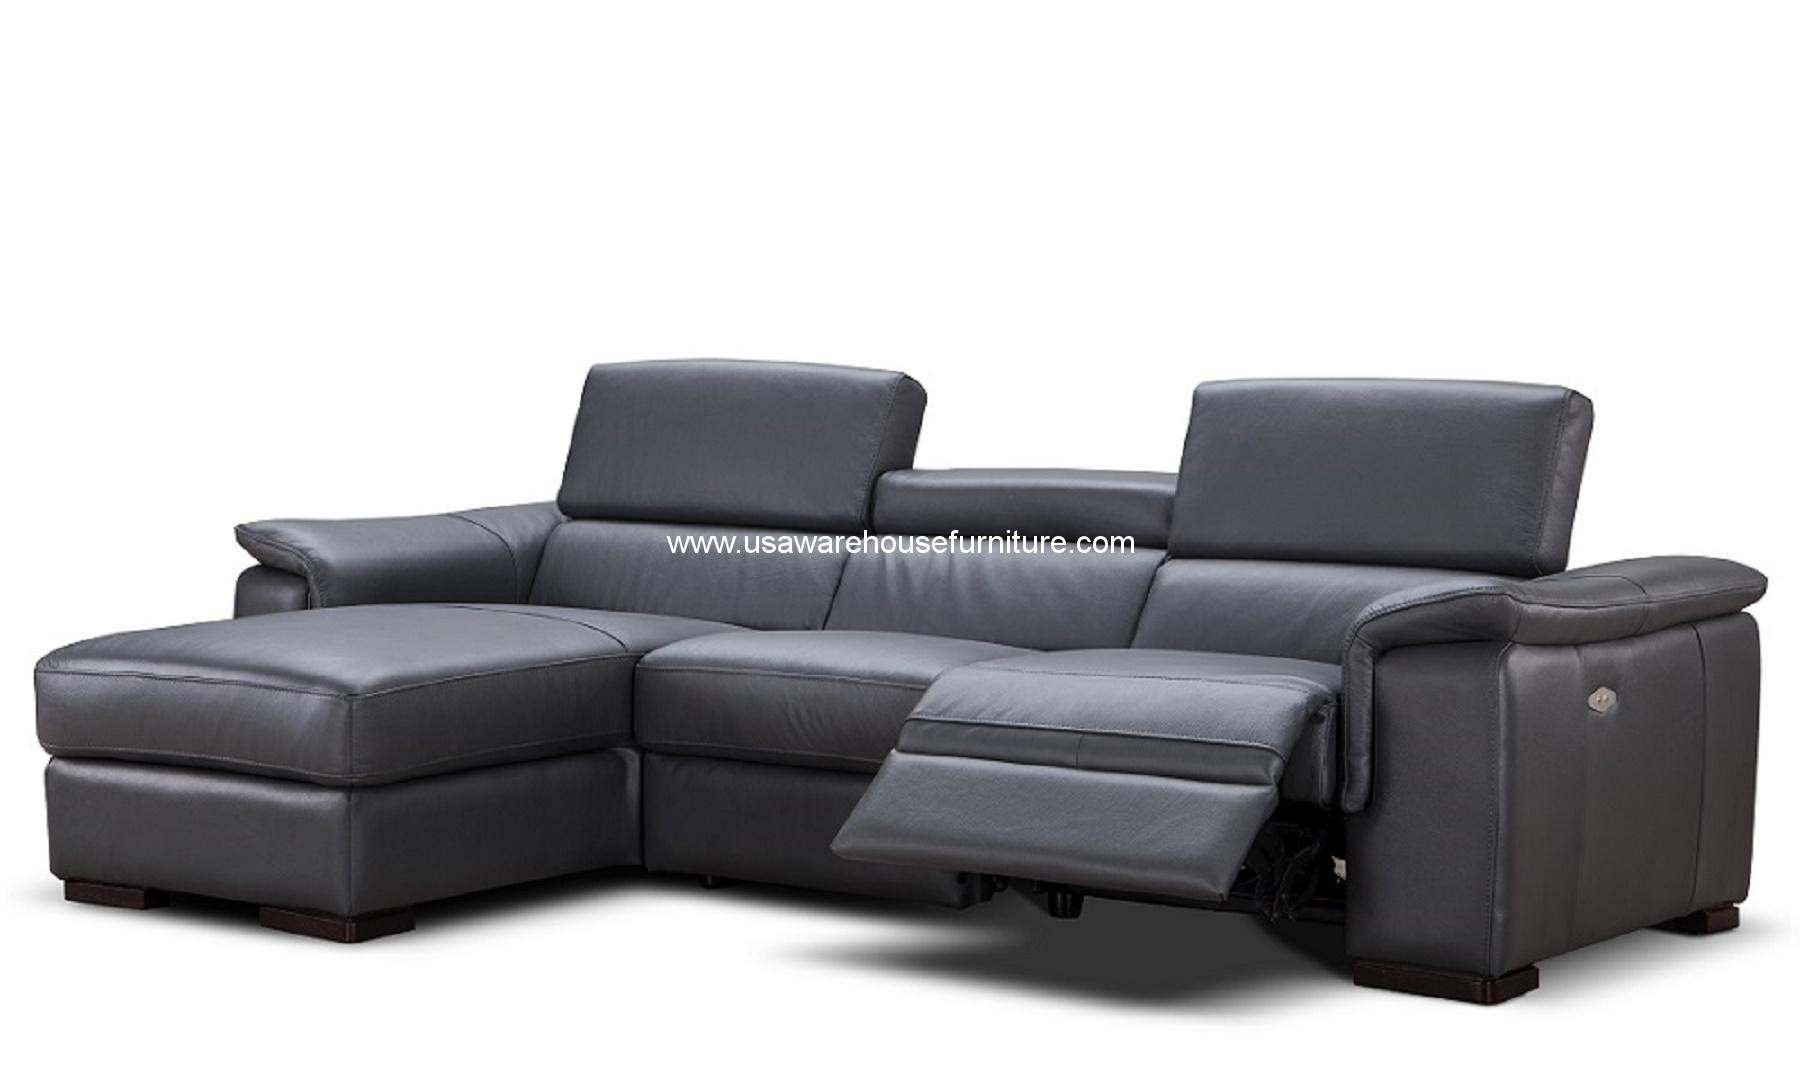 Alba Premium Leather Power Reclining Sectional on electric lamp